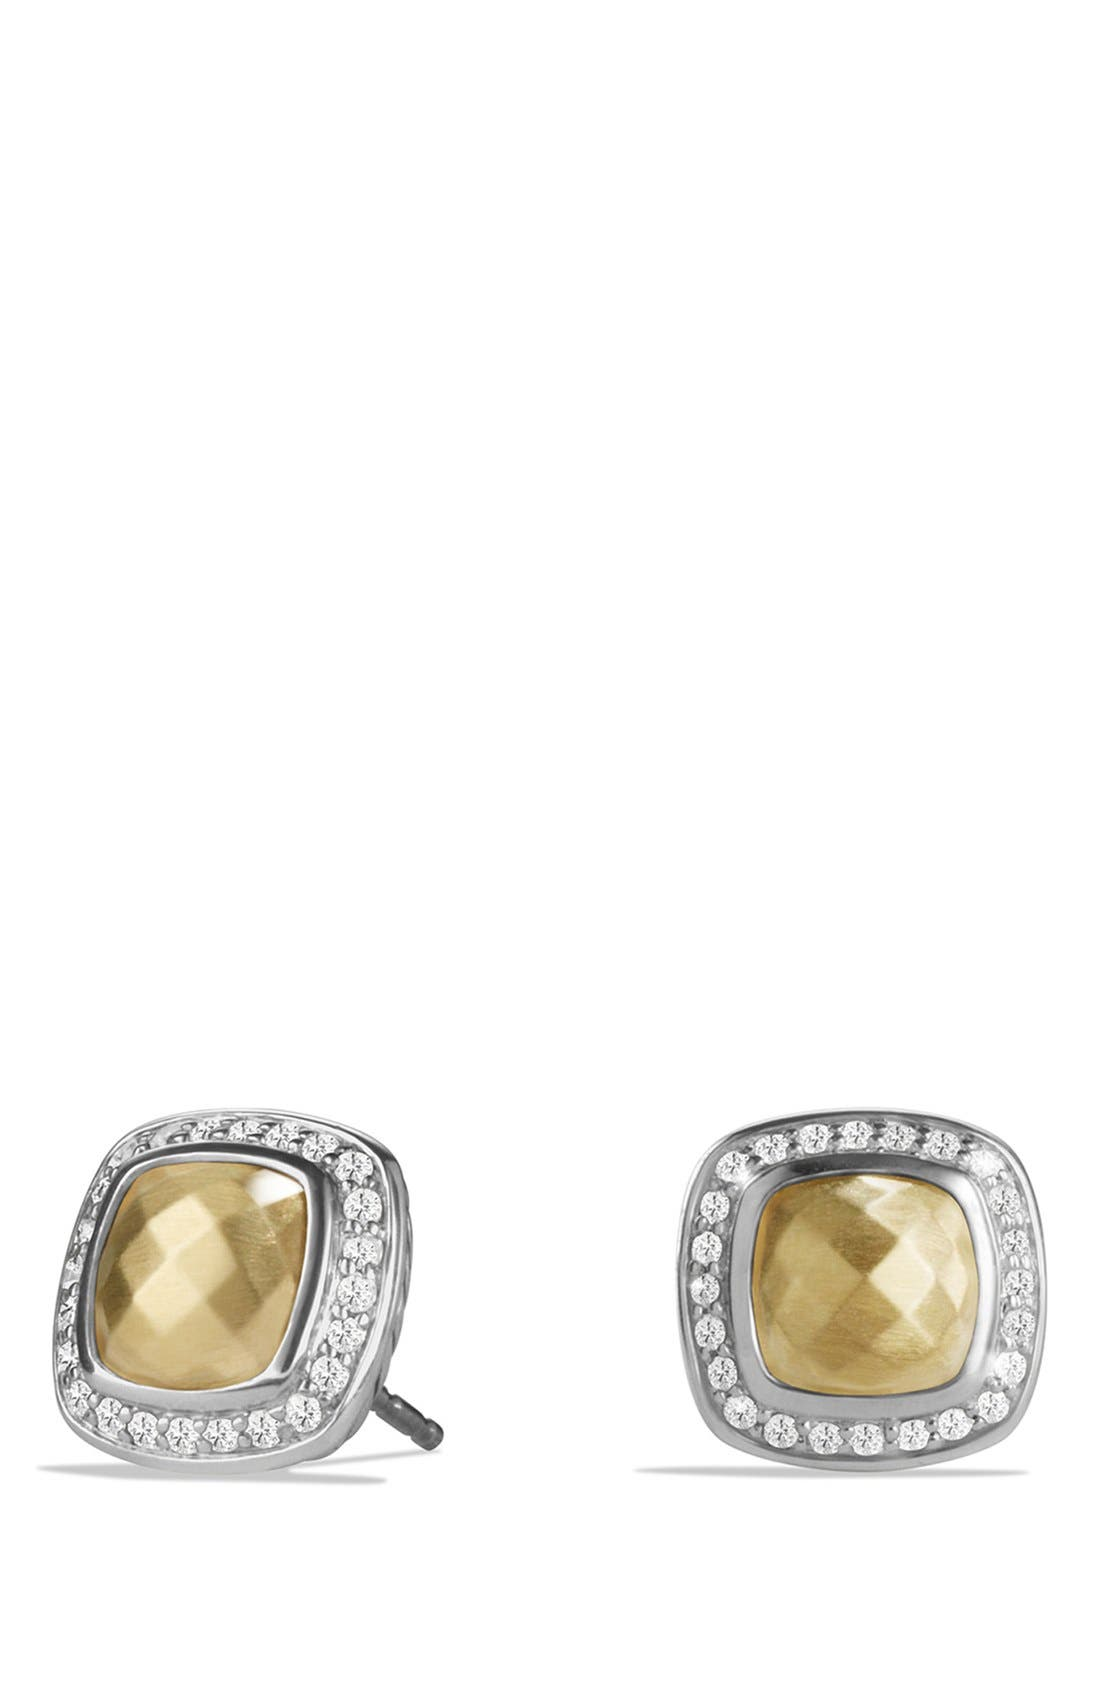 Main Image - David Yurman 'Albion' Earrings with 18K Gold Dome and Diamonds